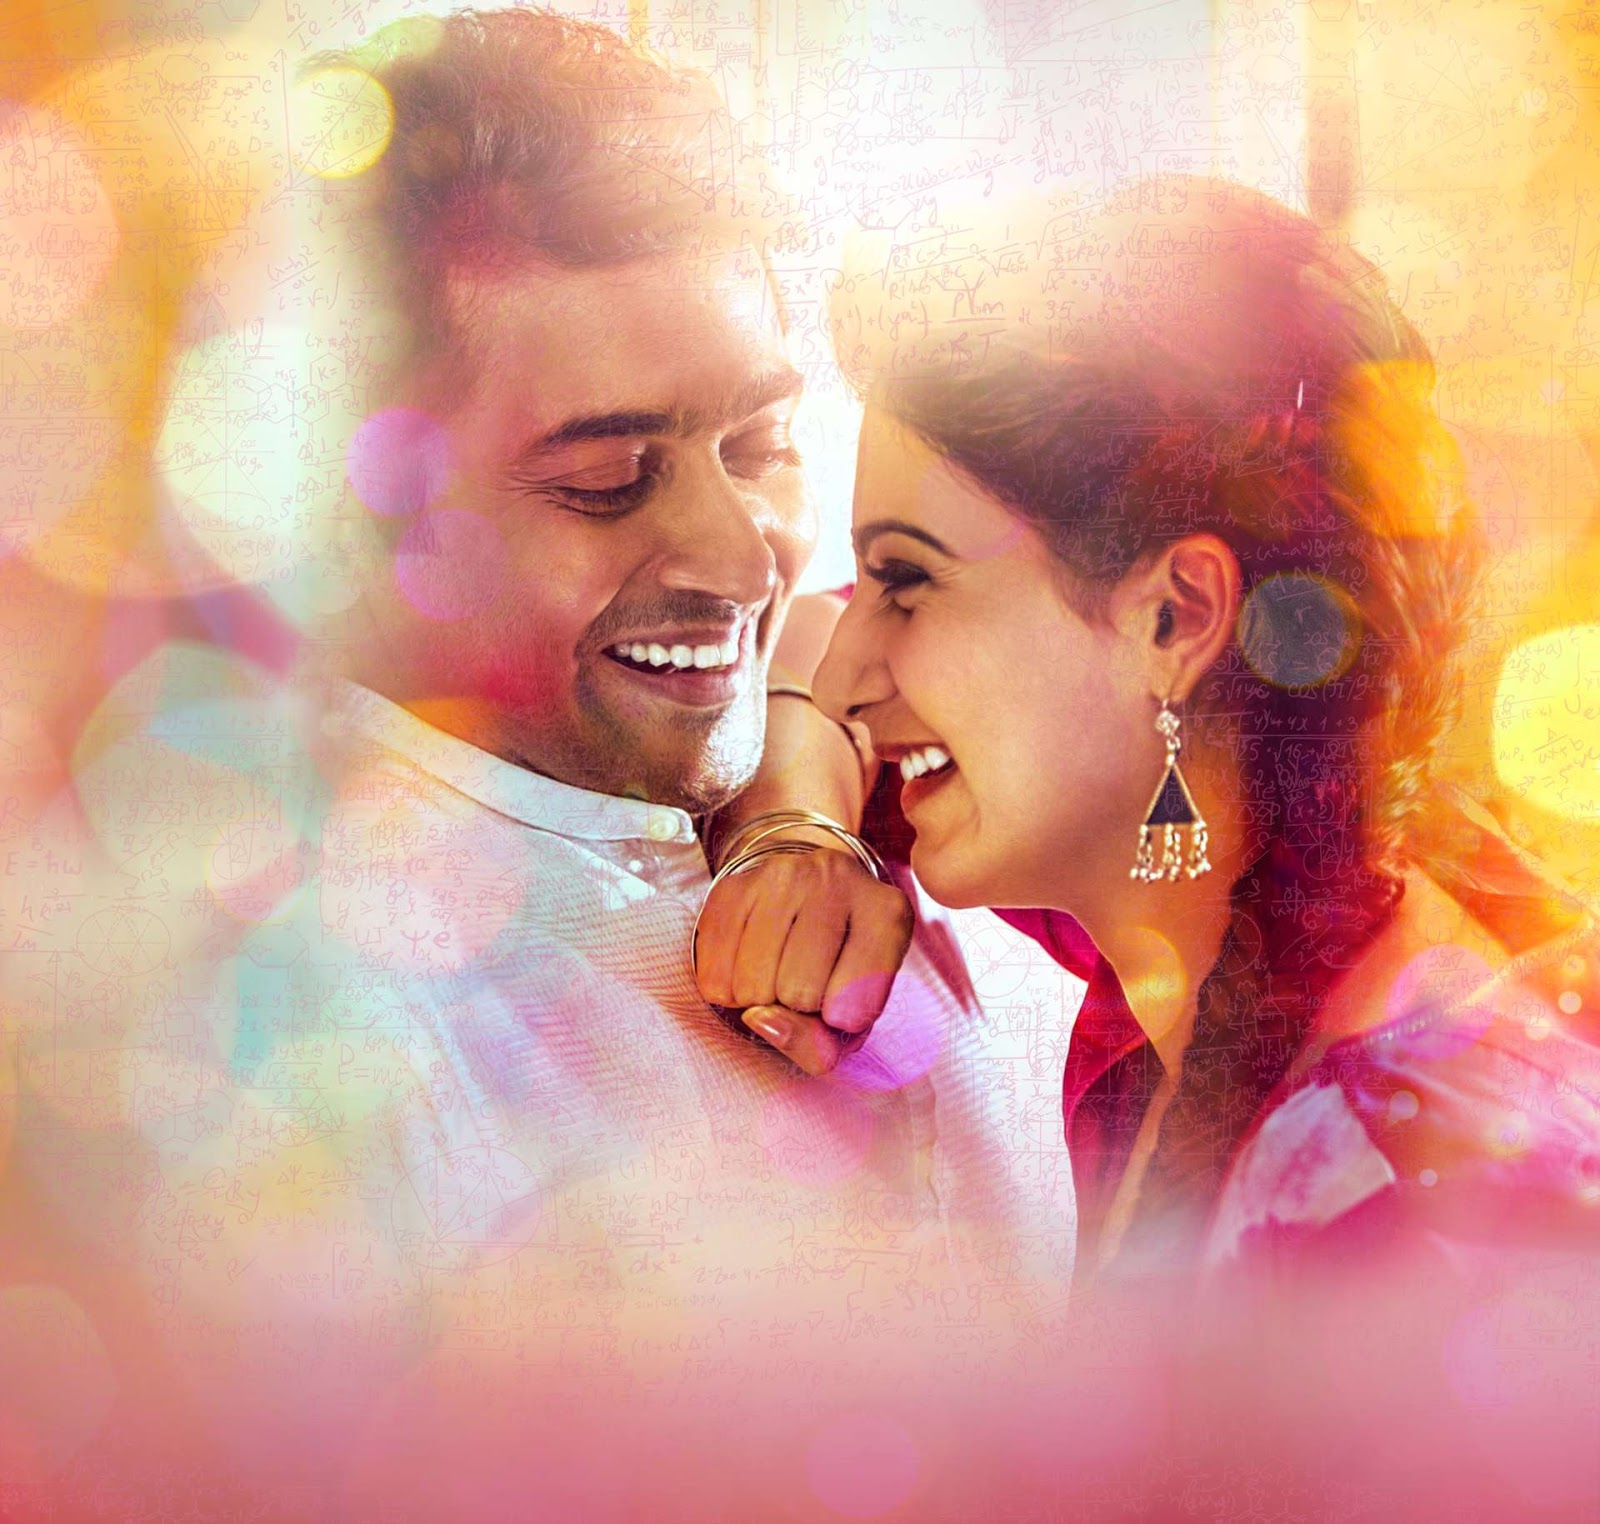 SURYA - All About Surya, Only About Surya!: 24 the movie HD Wallpapers